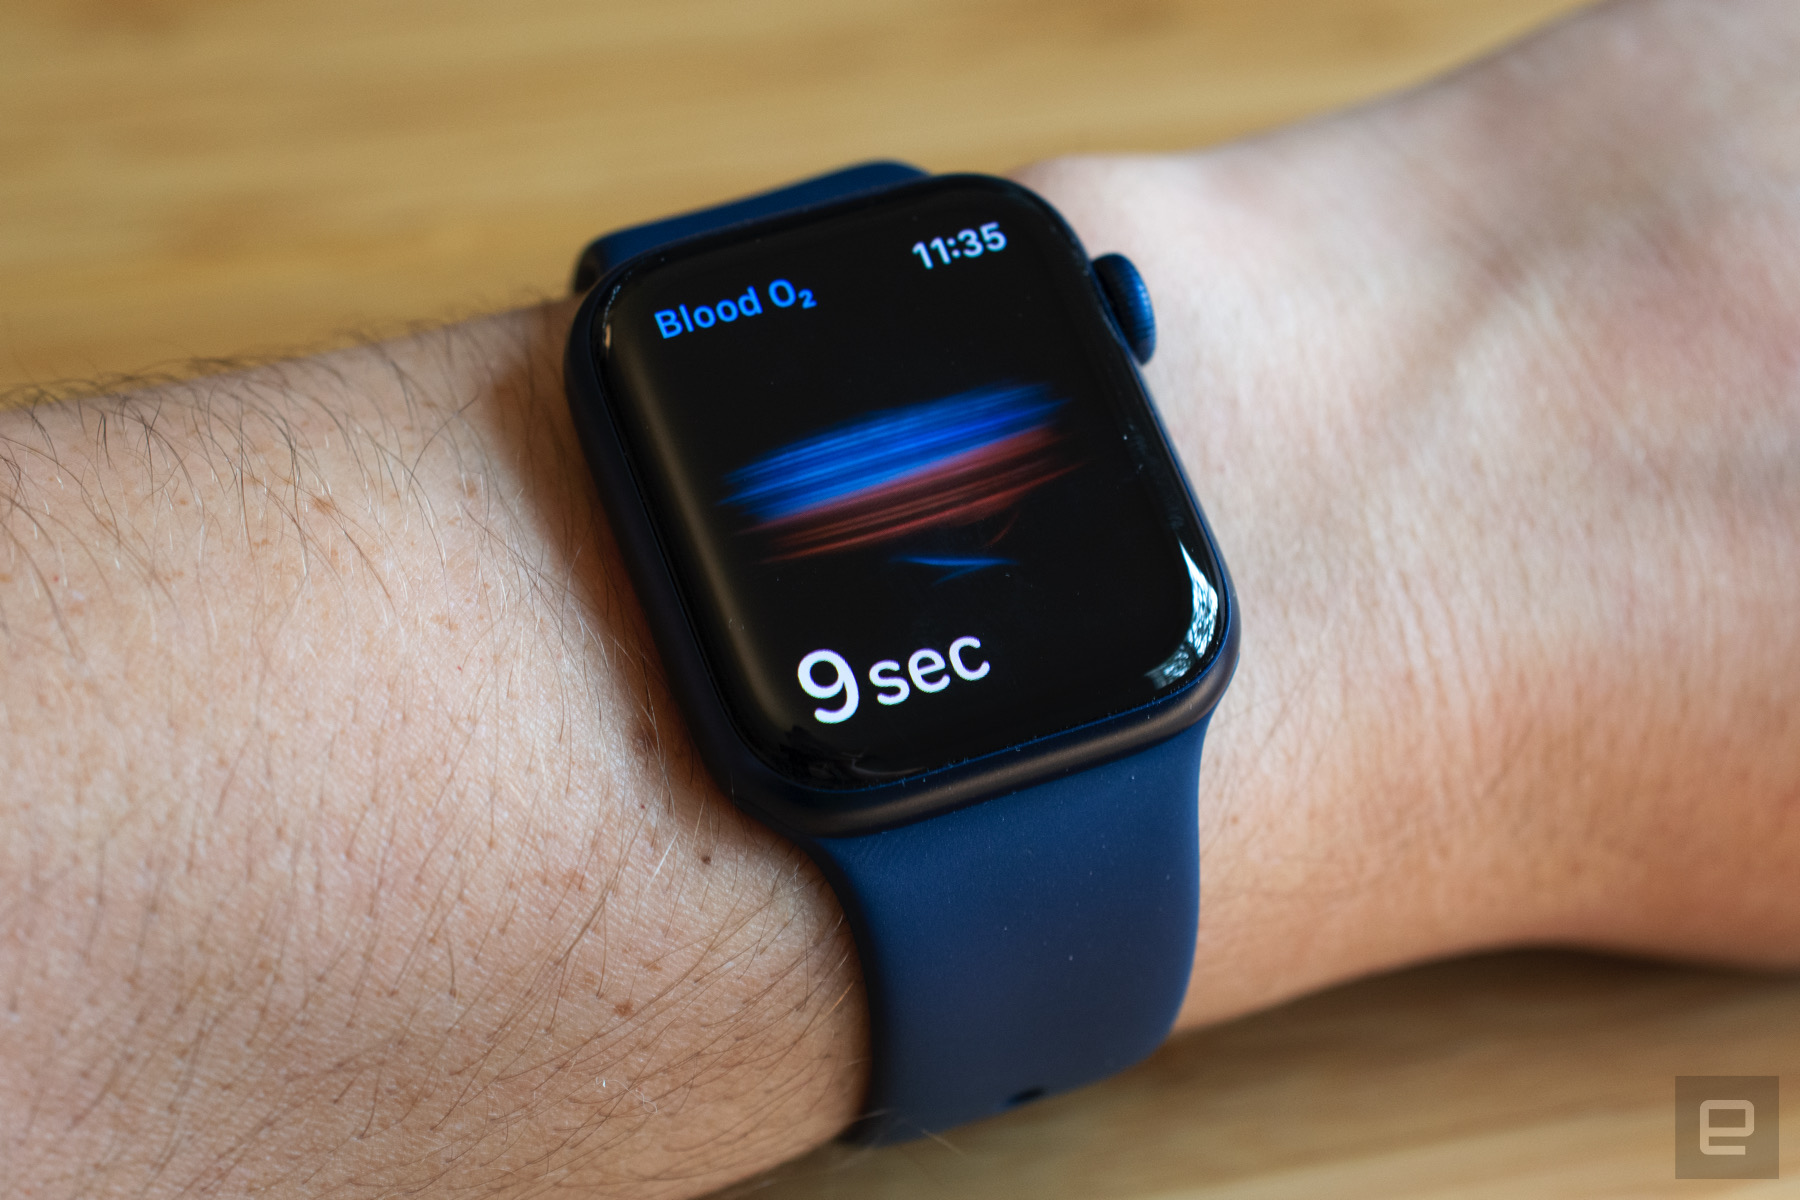 Apple Watch Series 6 cellular models are at an all-time low on Amazon